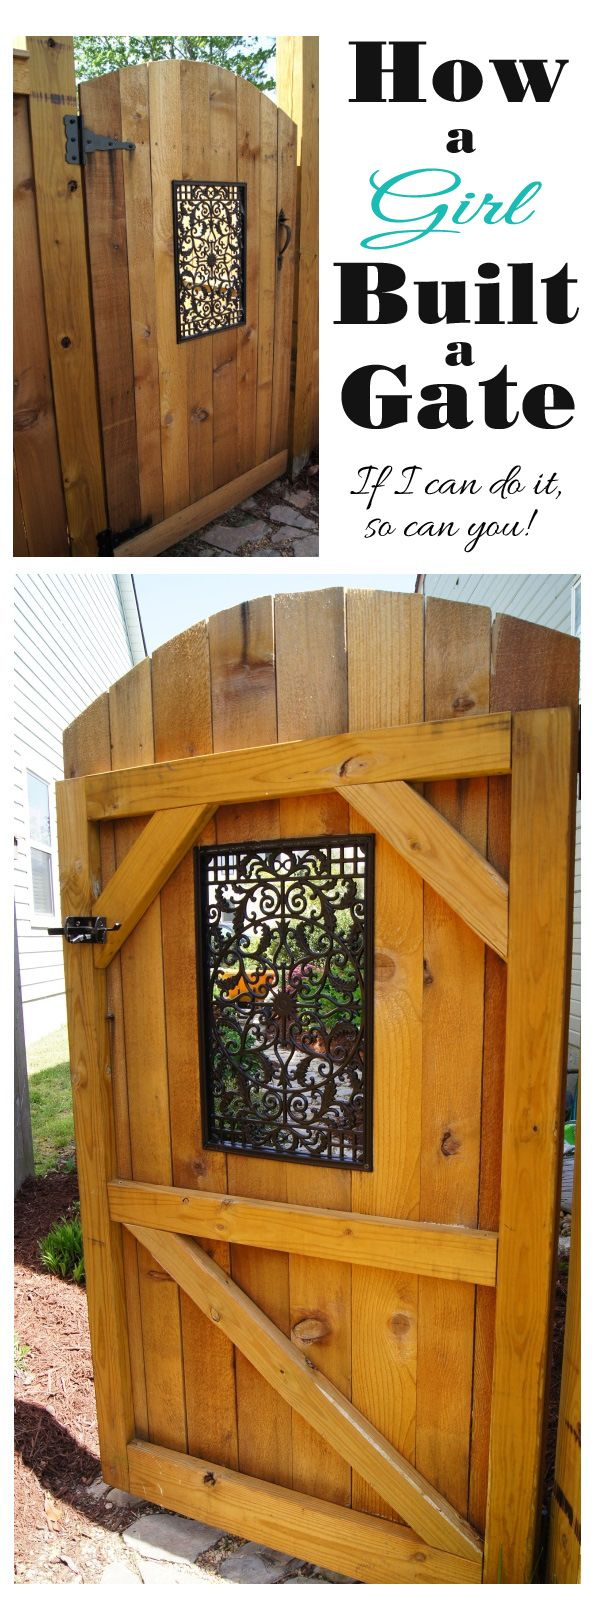 How To Build A Gate With Decorative Window By Confessions Of Serial Do It Yourselfer